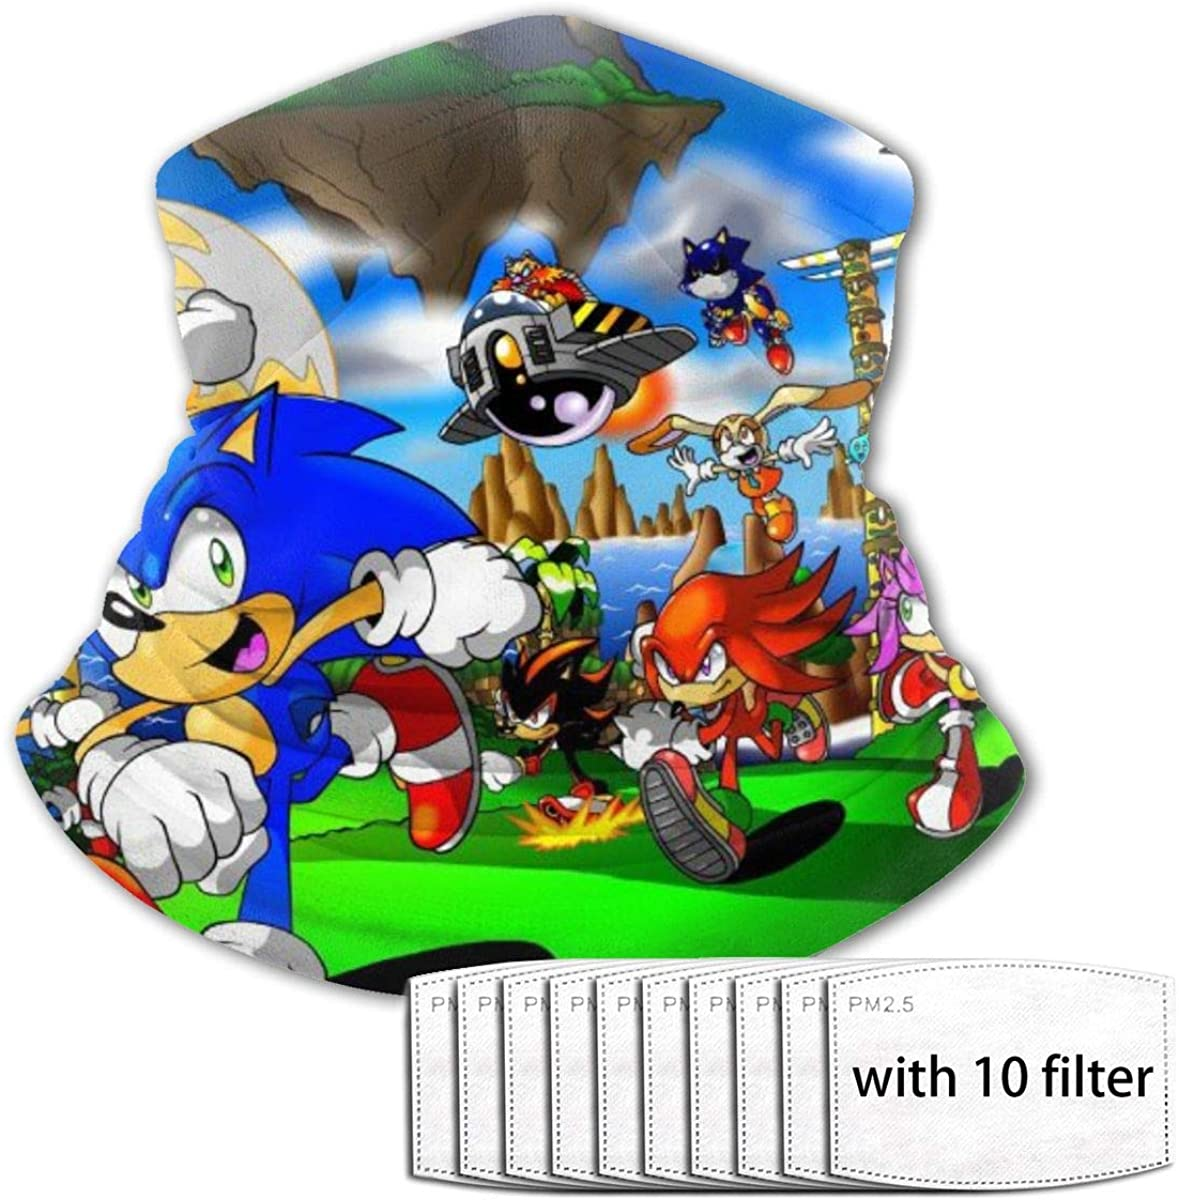 Head Scarf, Sonic The Hedgehog Windproof Face Mask with With 10 Filter Filter Headbands Bandana Head Wrap Balaclava for Youth